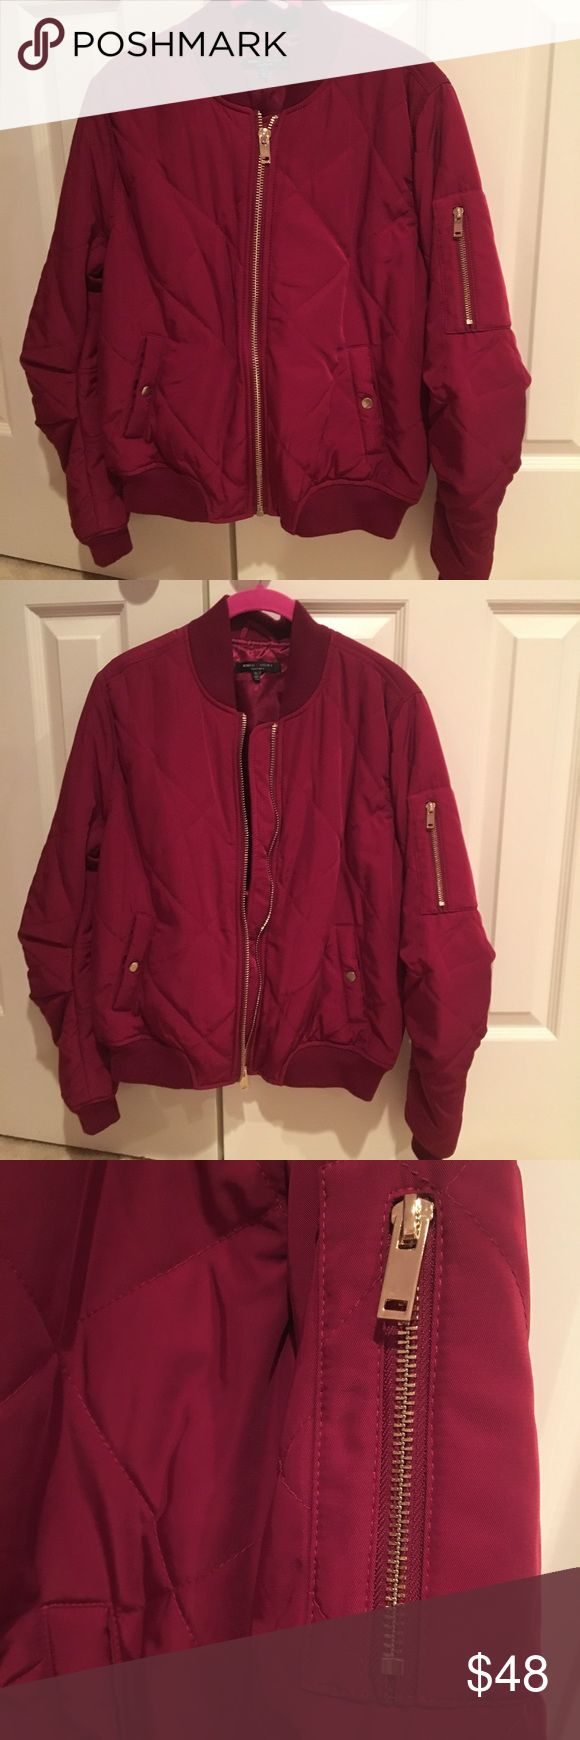 Romeo and Juliet Couture Bomber Jacket Red Wine L NWOT! Never worn. Quilted bomber jacket in fall's fabulous bordeaux wine red color. 😍😘💋 Romeo & Juliet Couture Jackets & Coats Utility Jackets